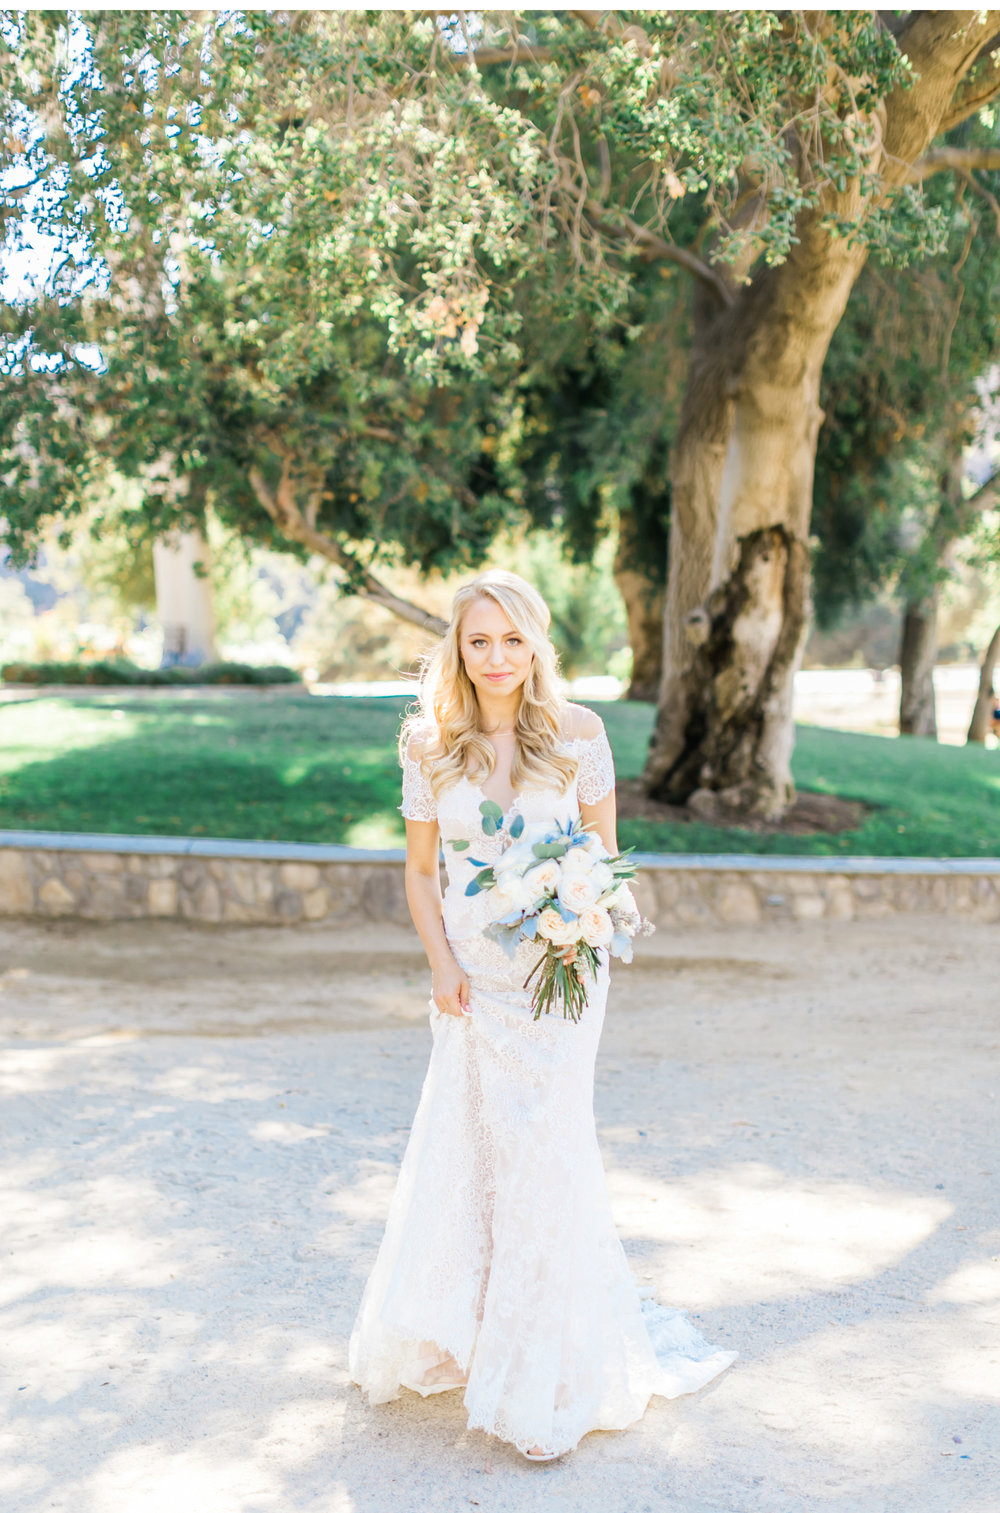 Temecula-Wedding-Photographer-Style-Me-Pretty-Natalie-Schutt-Photography_17.jpg